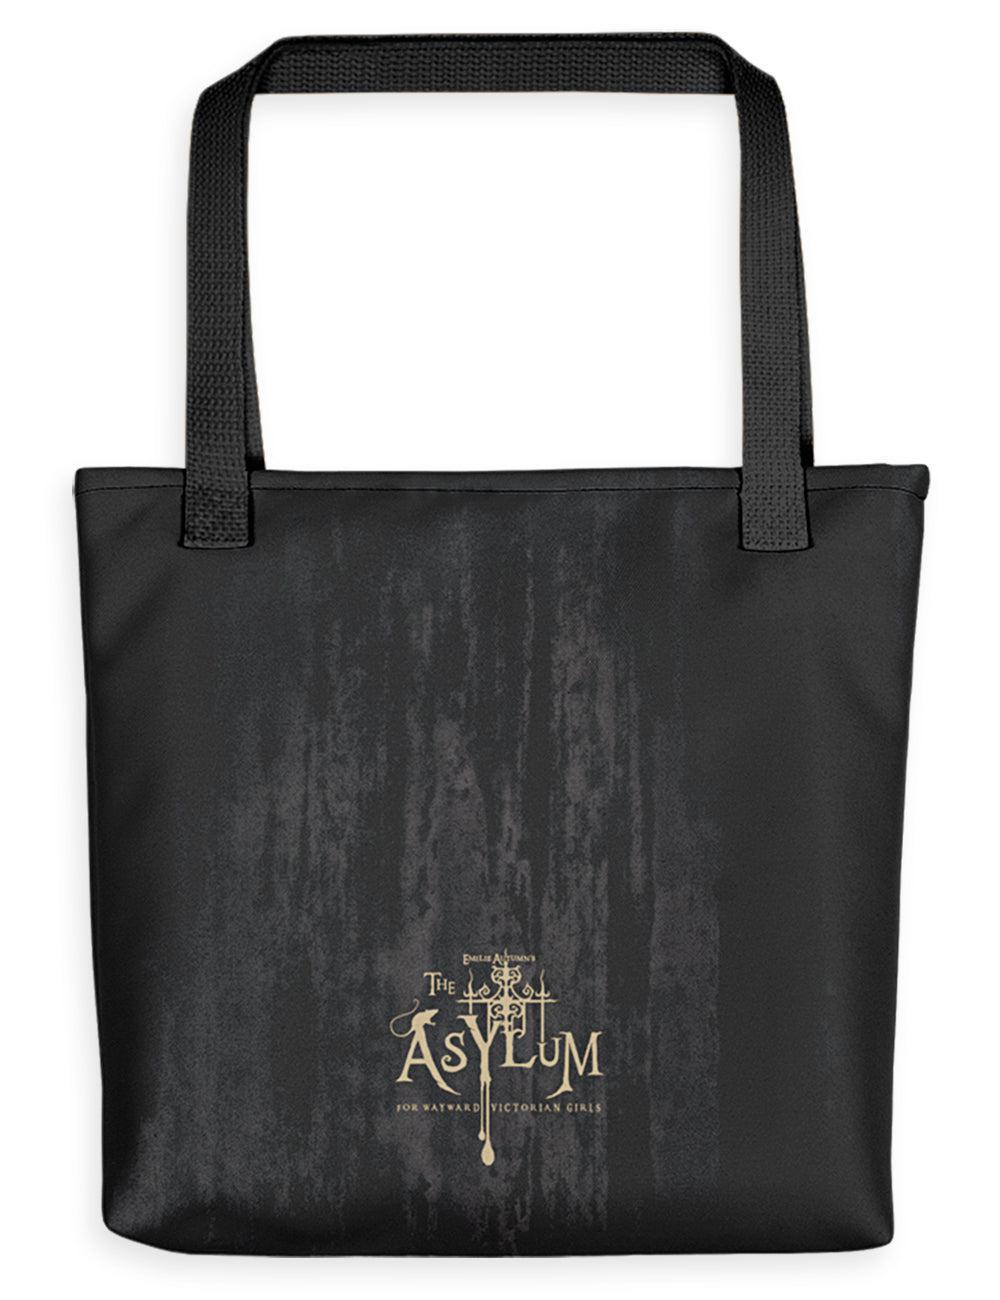 Asylum Gaslight Luxury Tote Bag - The Asylum Emporium